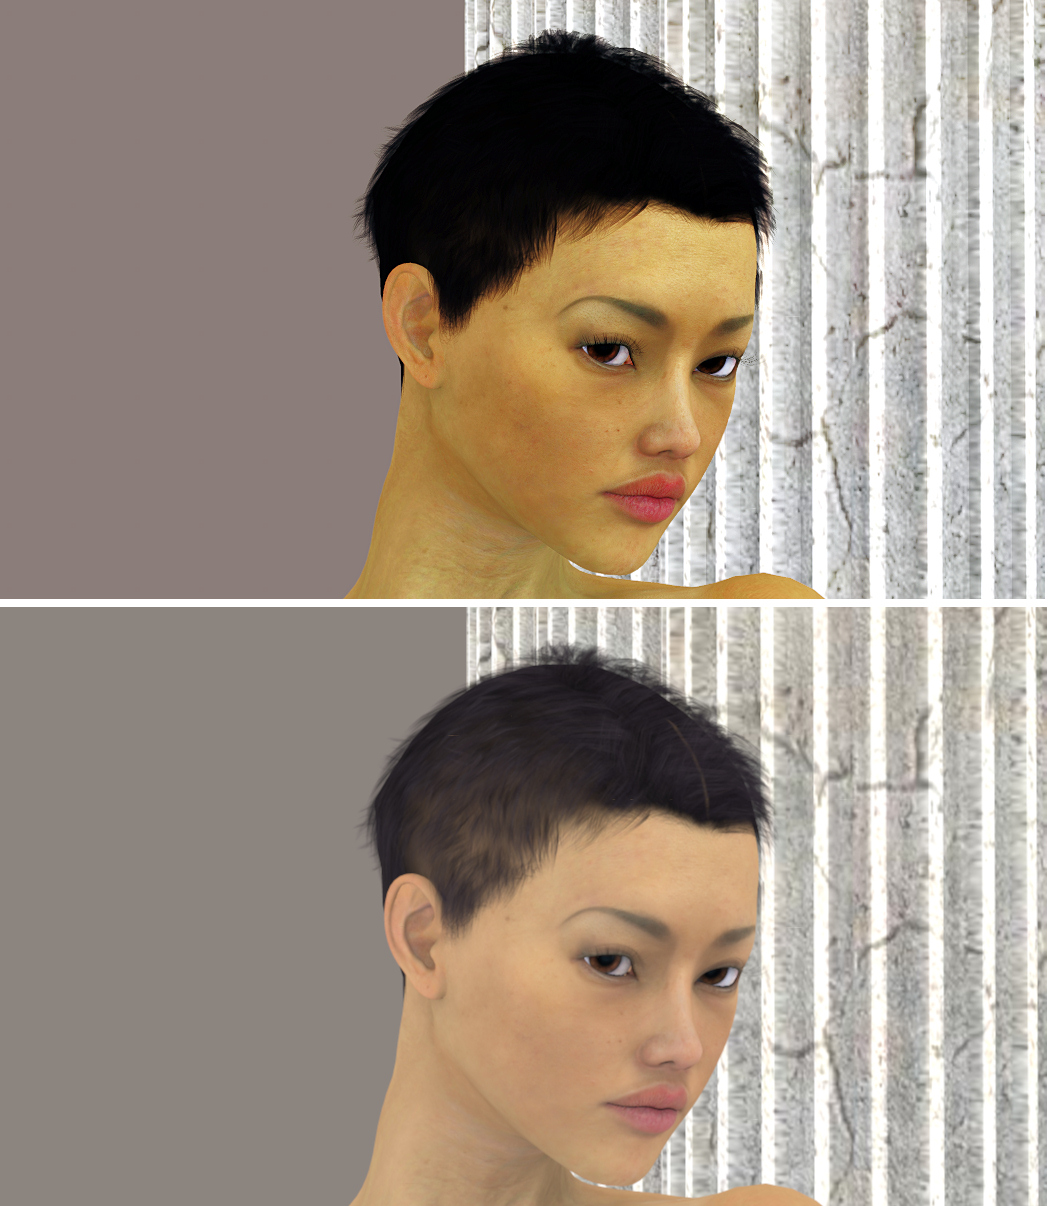 The Magic of a Poser 4 render - Part II